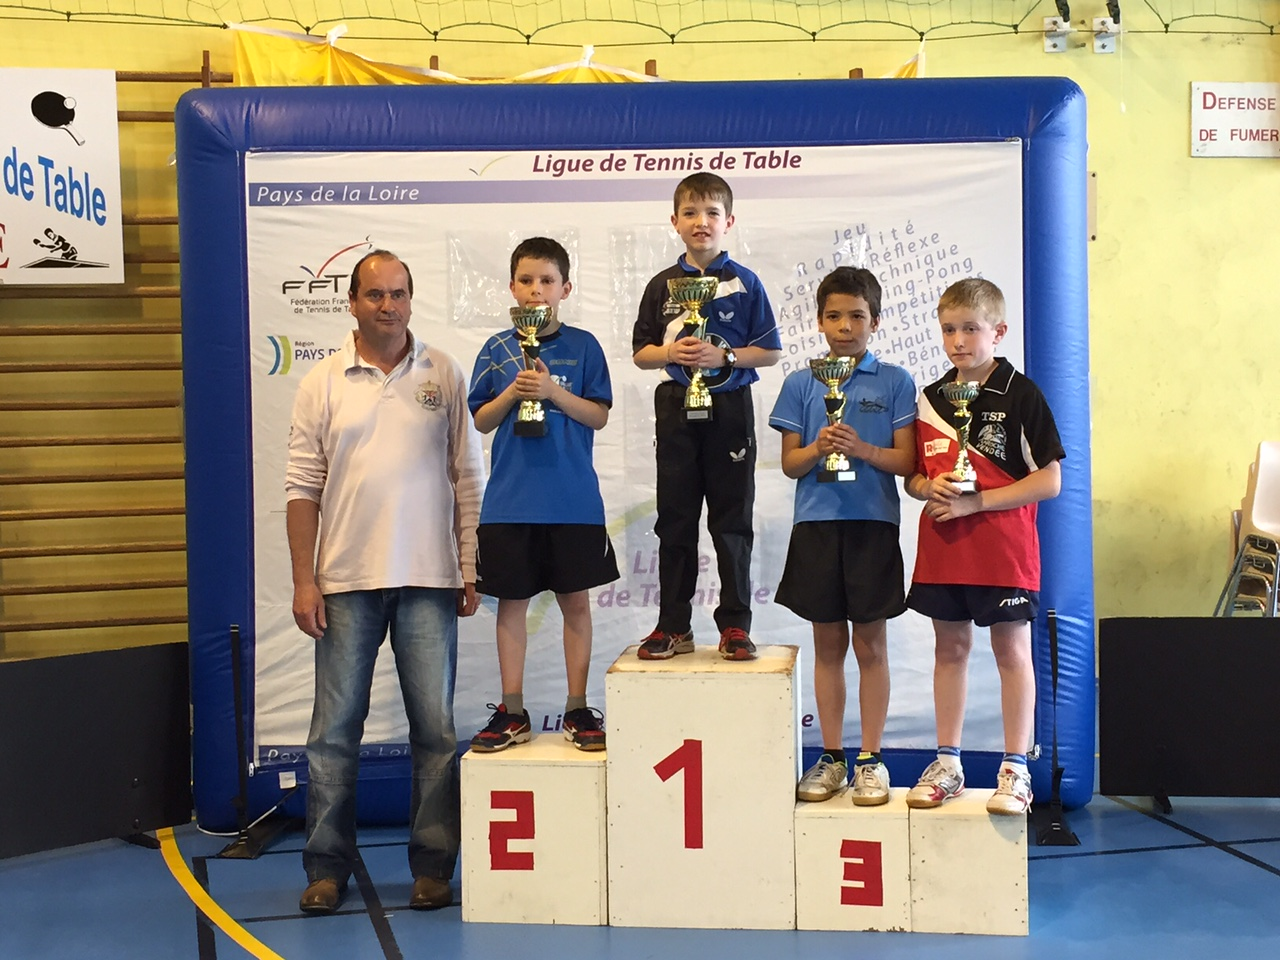 Tournoi open benjamins les resultats tennis de table - Ligue de tennis de table poitou charentes ...